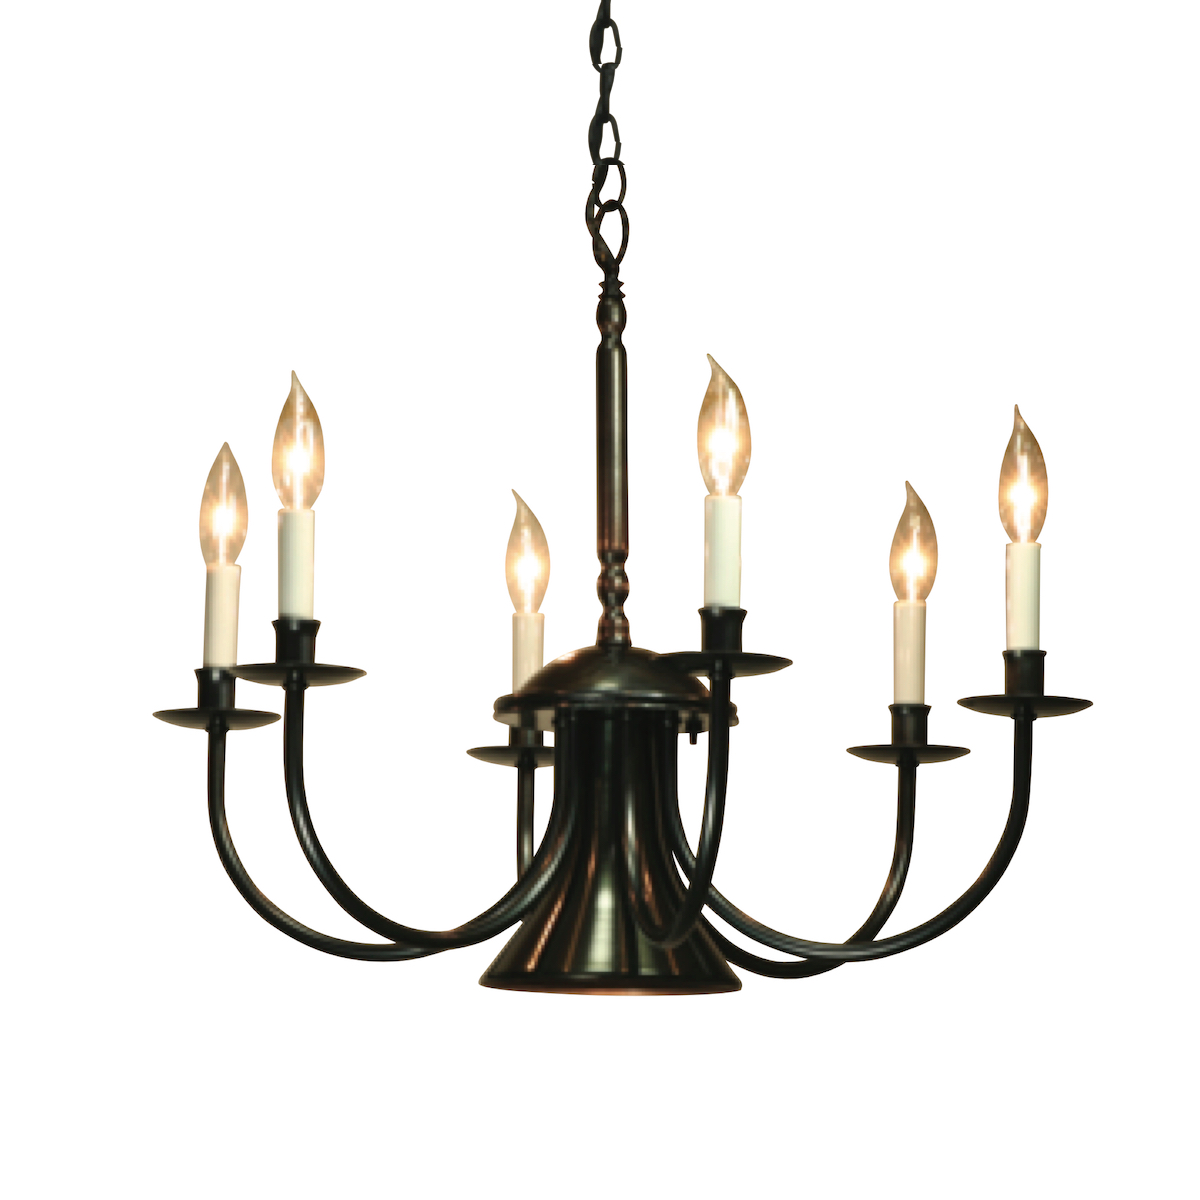 Lumina Chandelier 6 arm Candle w/Centre Light